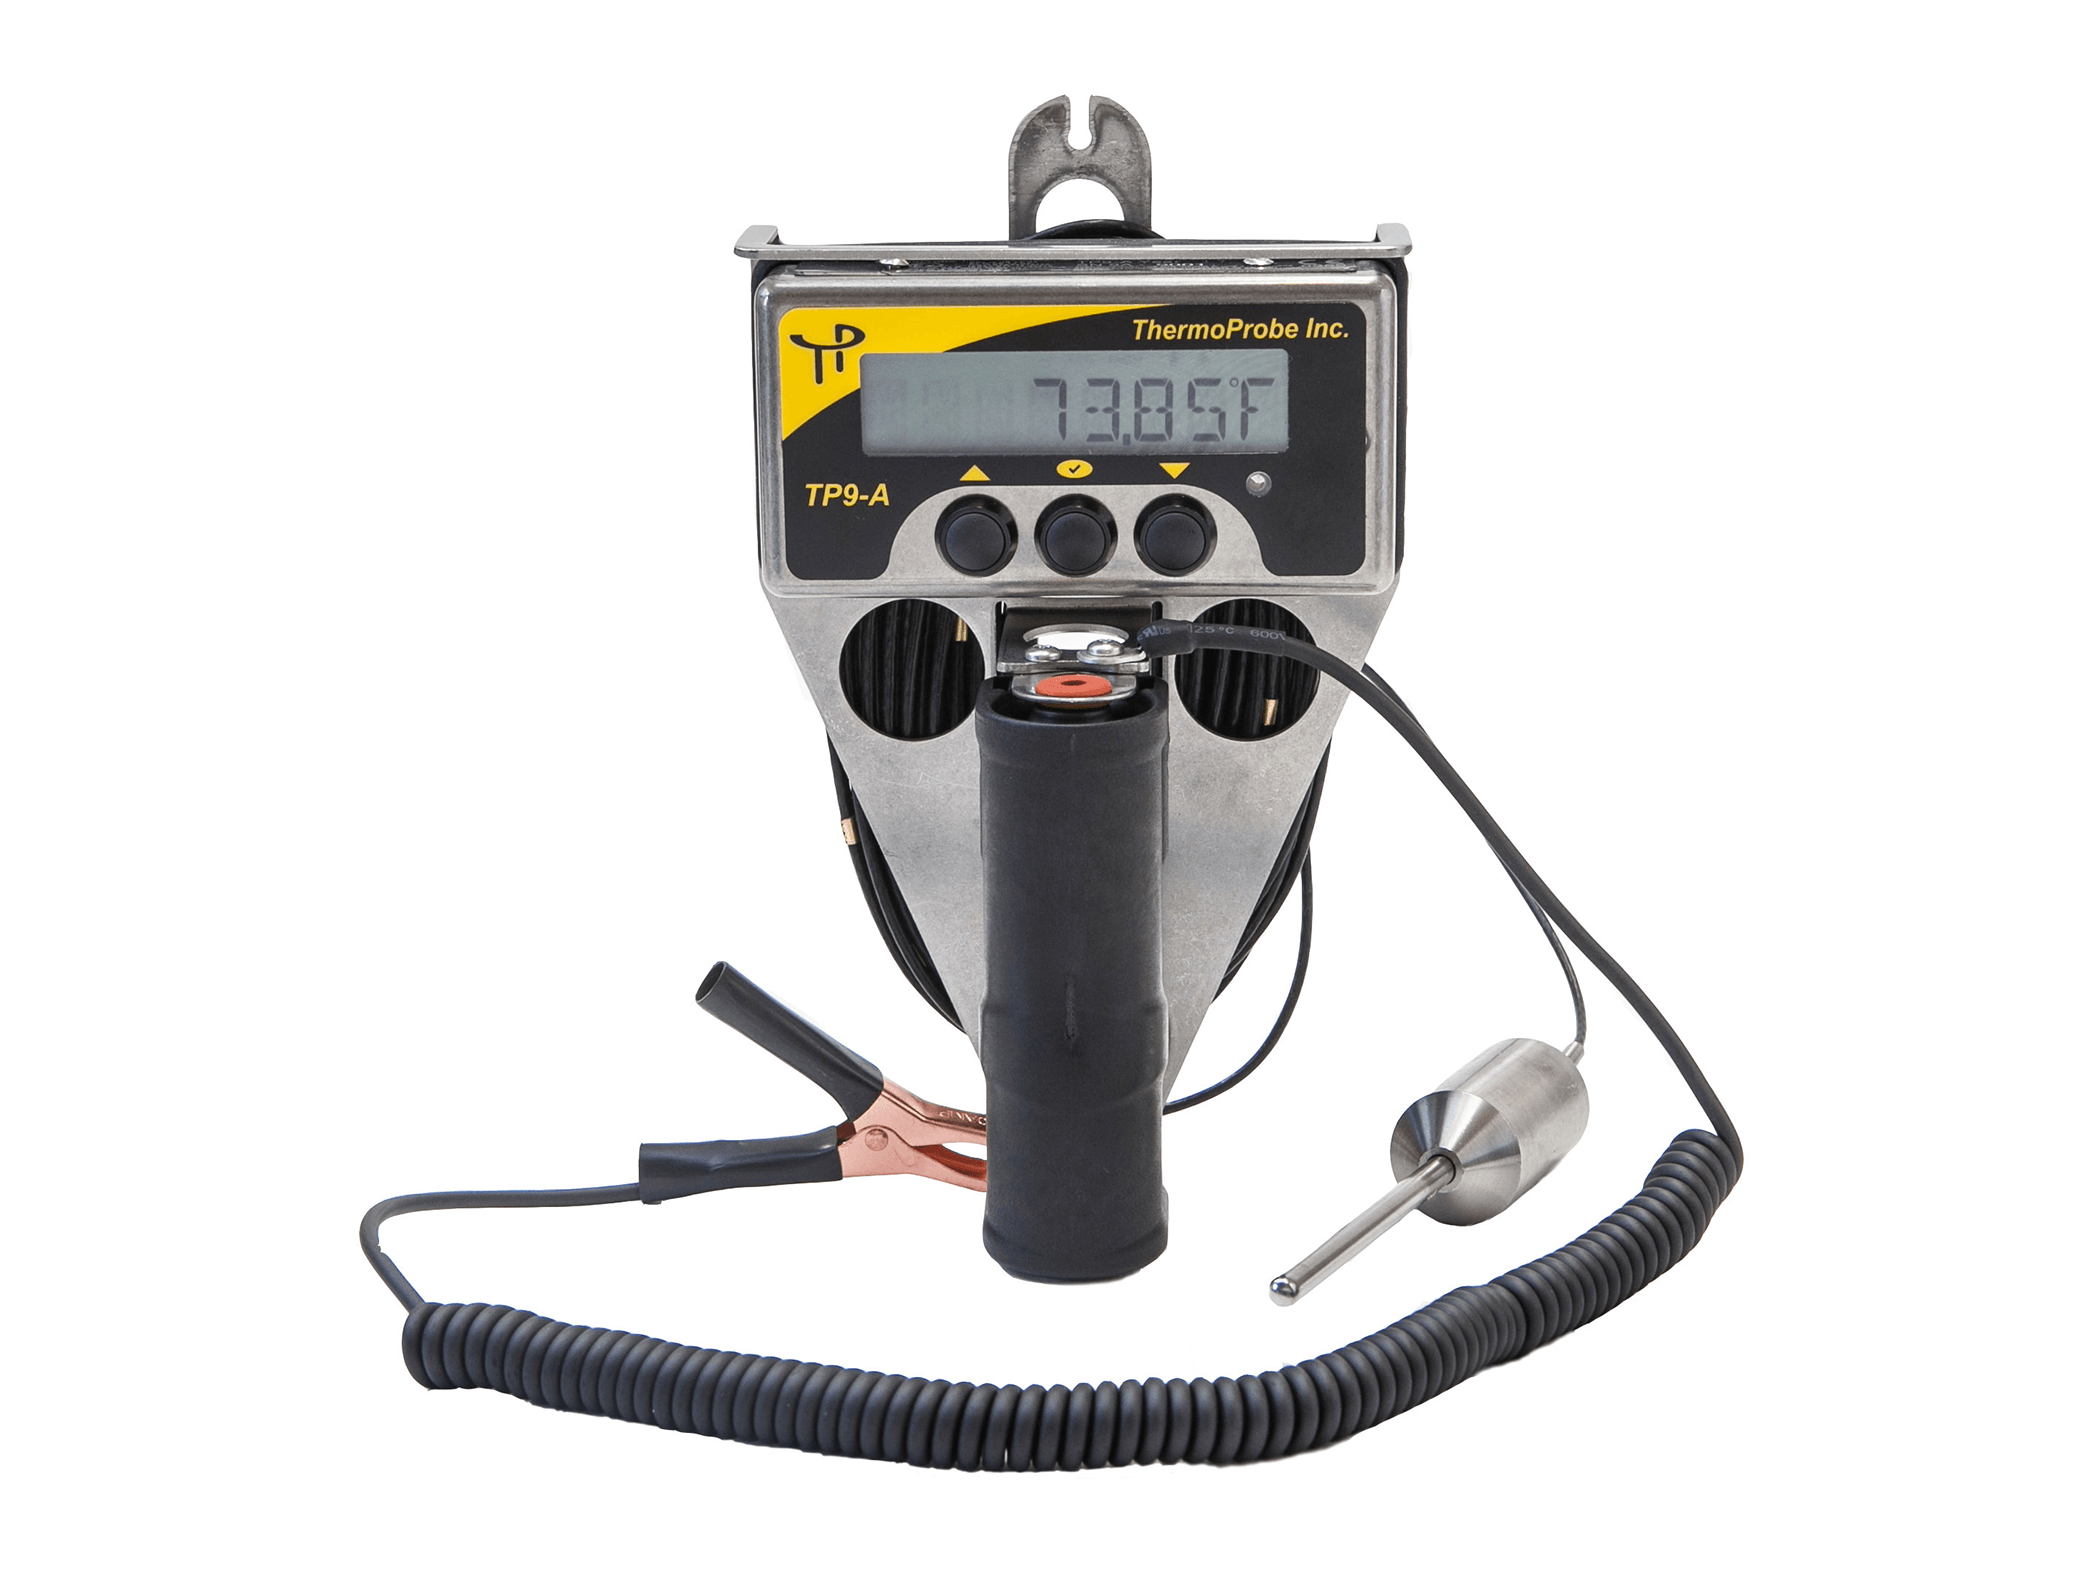 ThermoProbe TP9-A electronic gauging thermometer